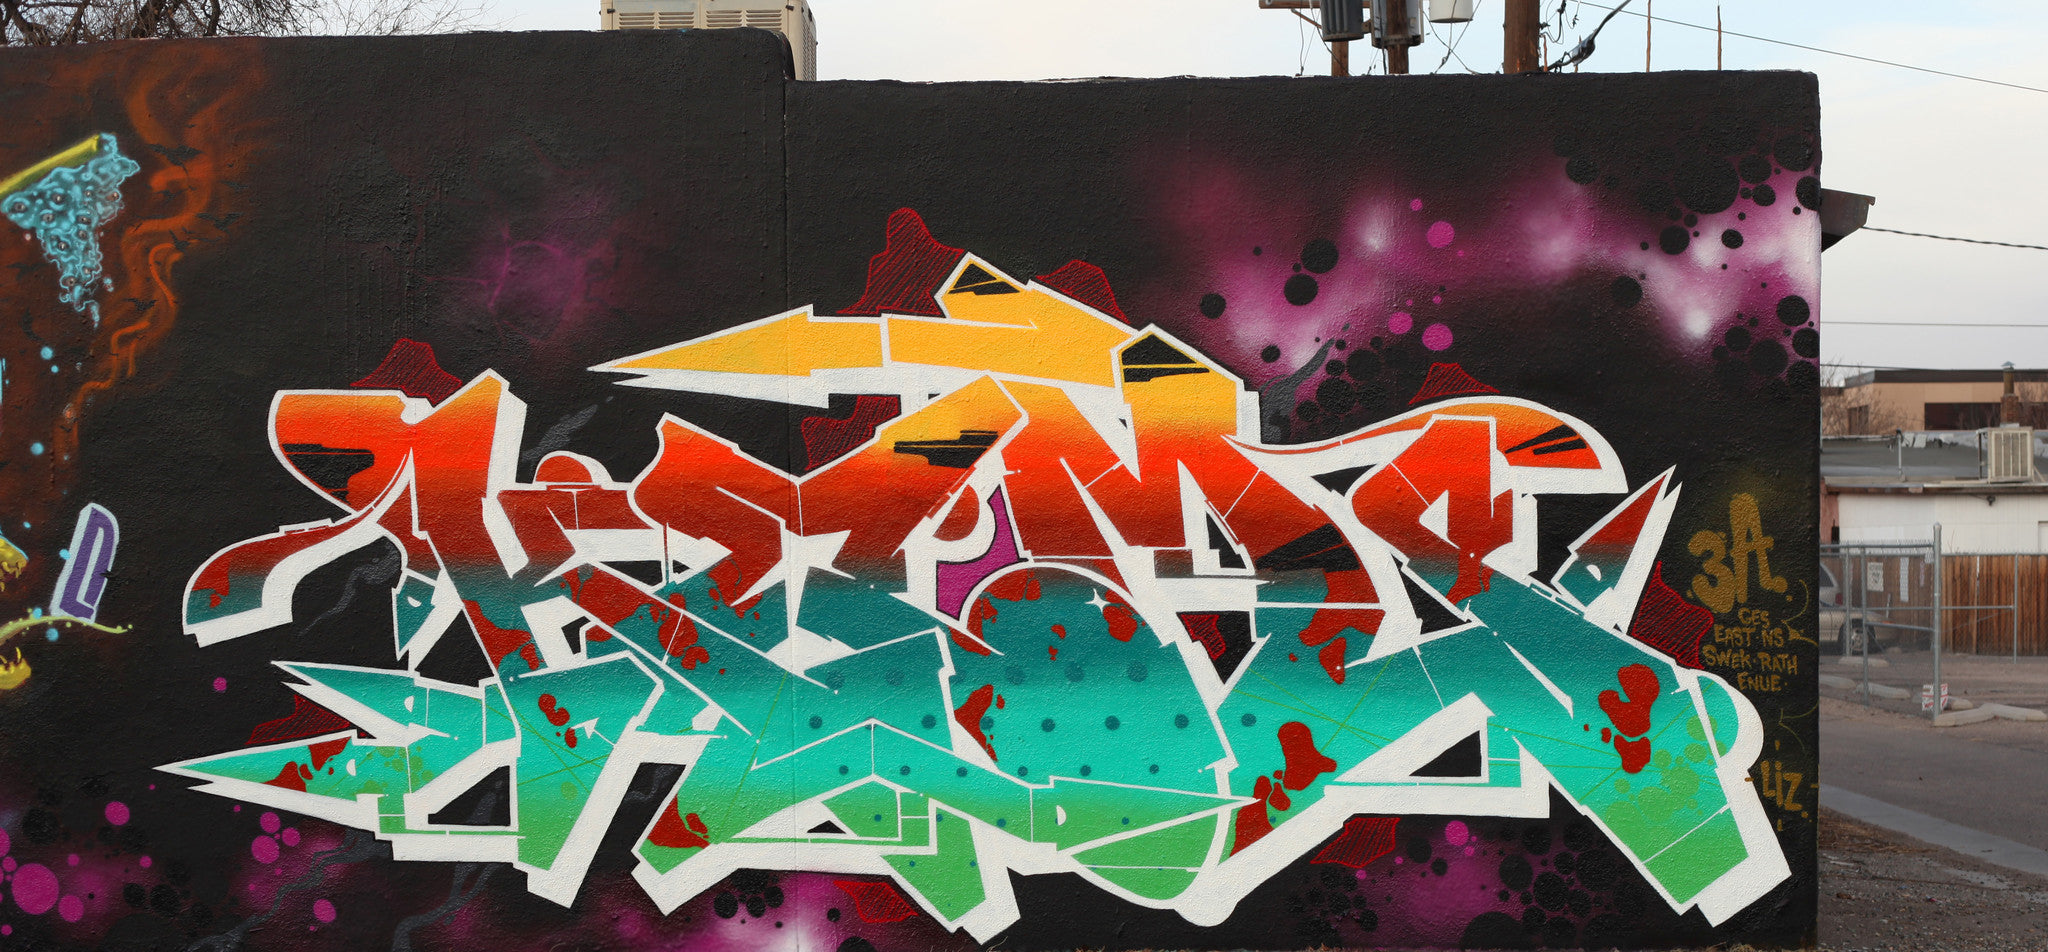 graffiti art kems kemer kem5 all chrome bandit of the day bandit1sm